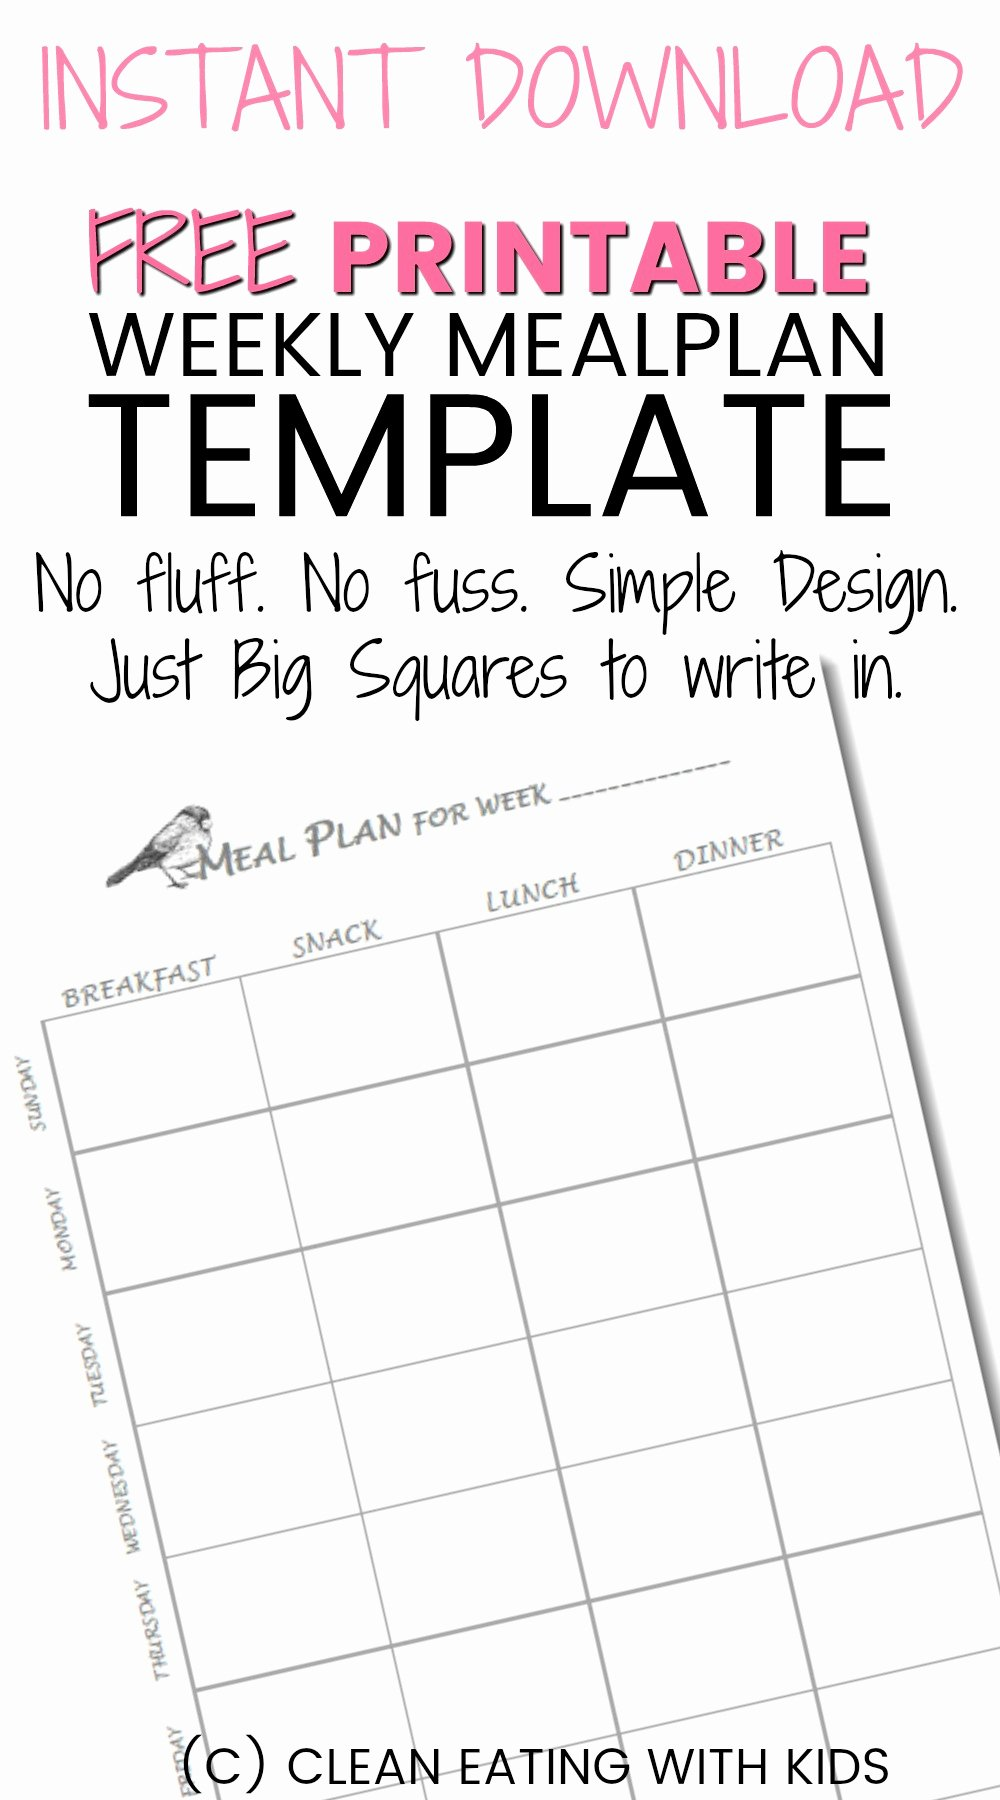 Free Meal Plan Templates Best Of Free Printable Weekly Meal Plan Template Clean Eating